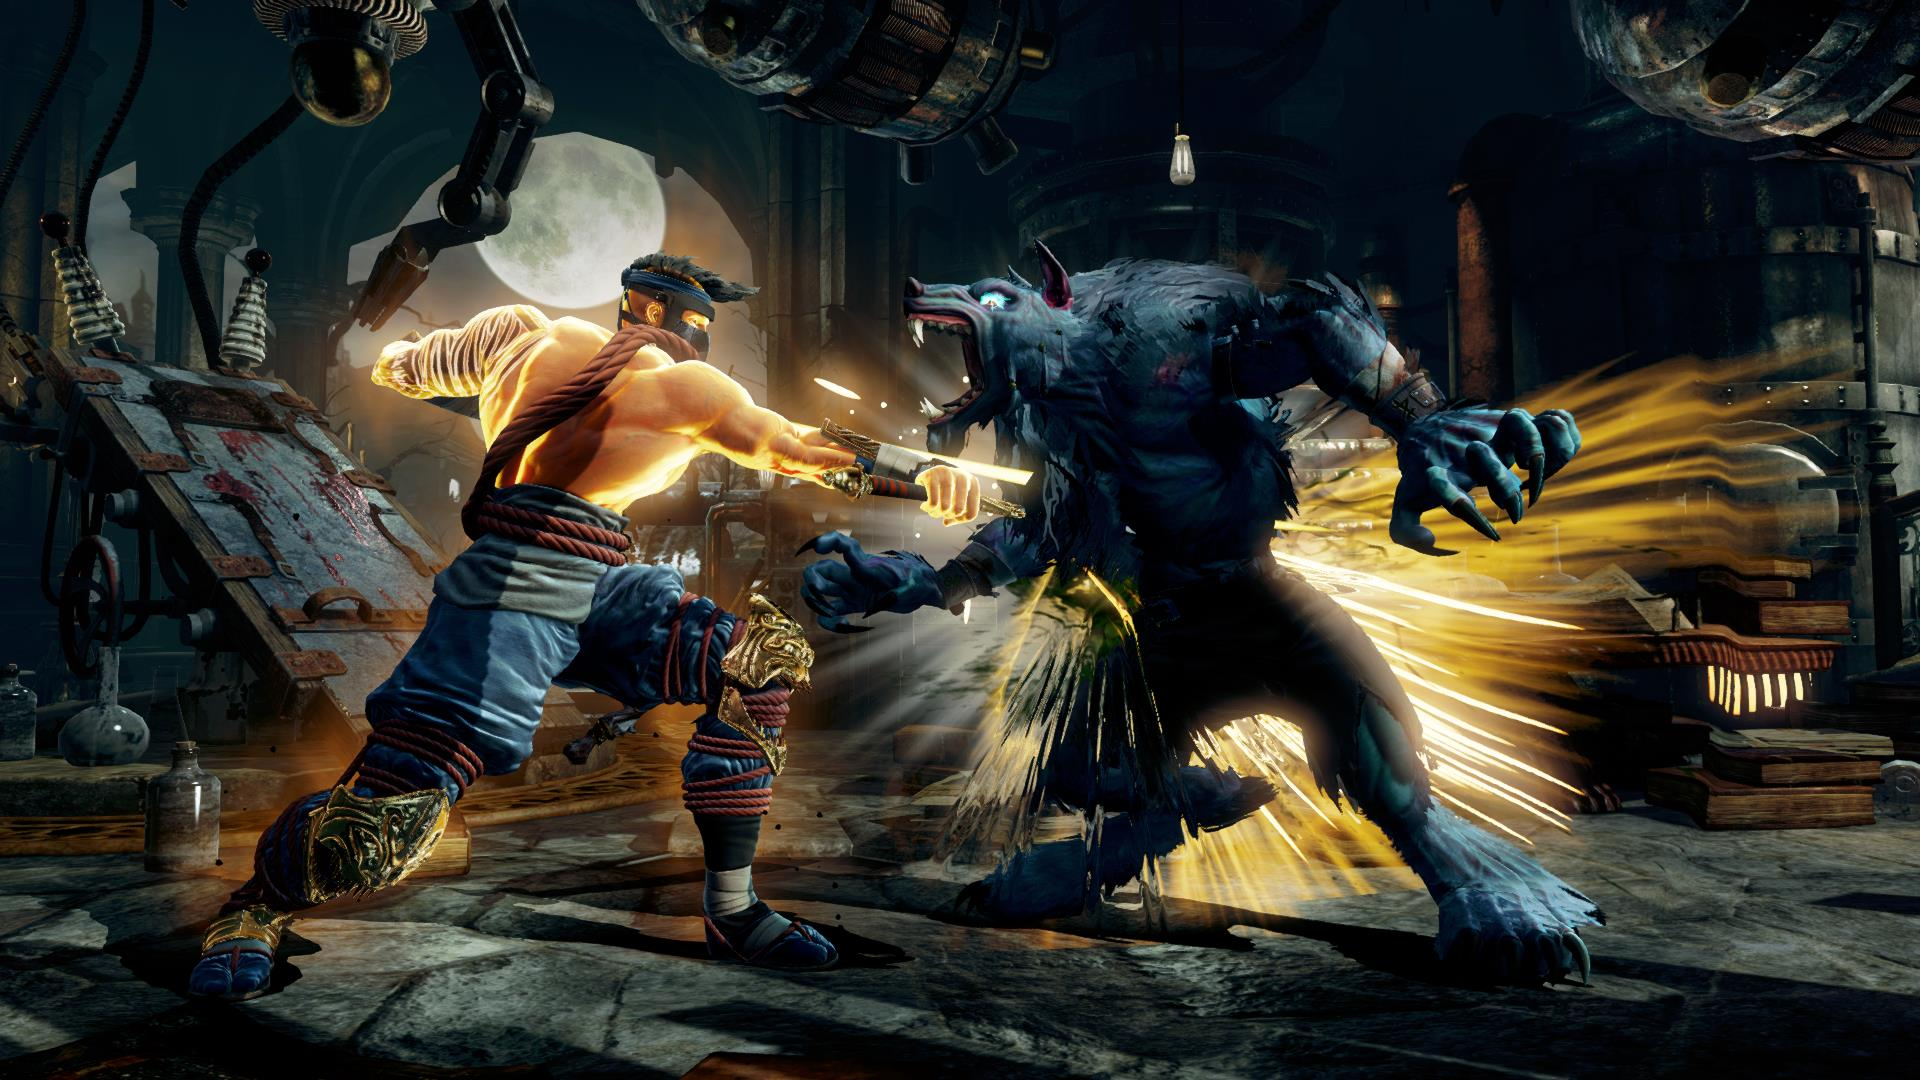 Sparring Jago in Killer Instinct